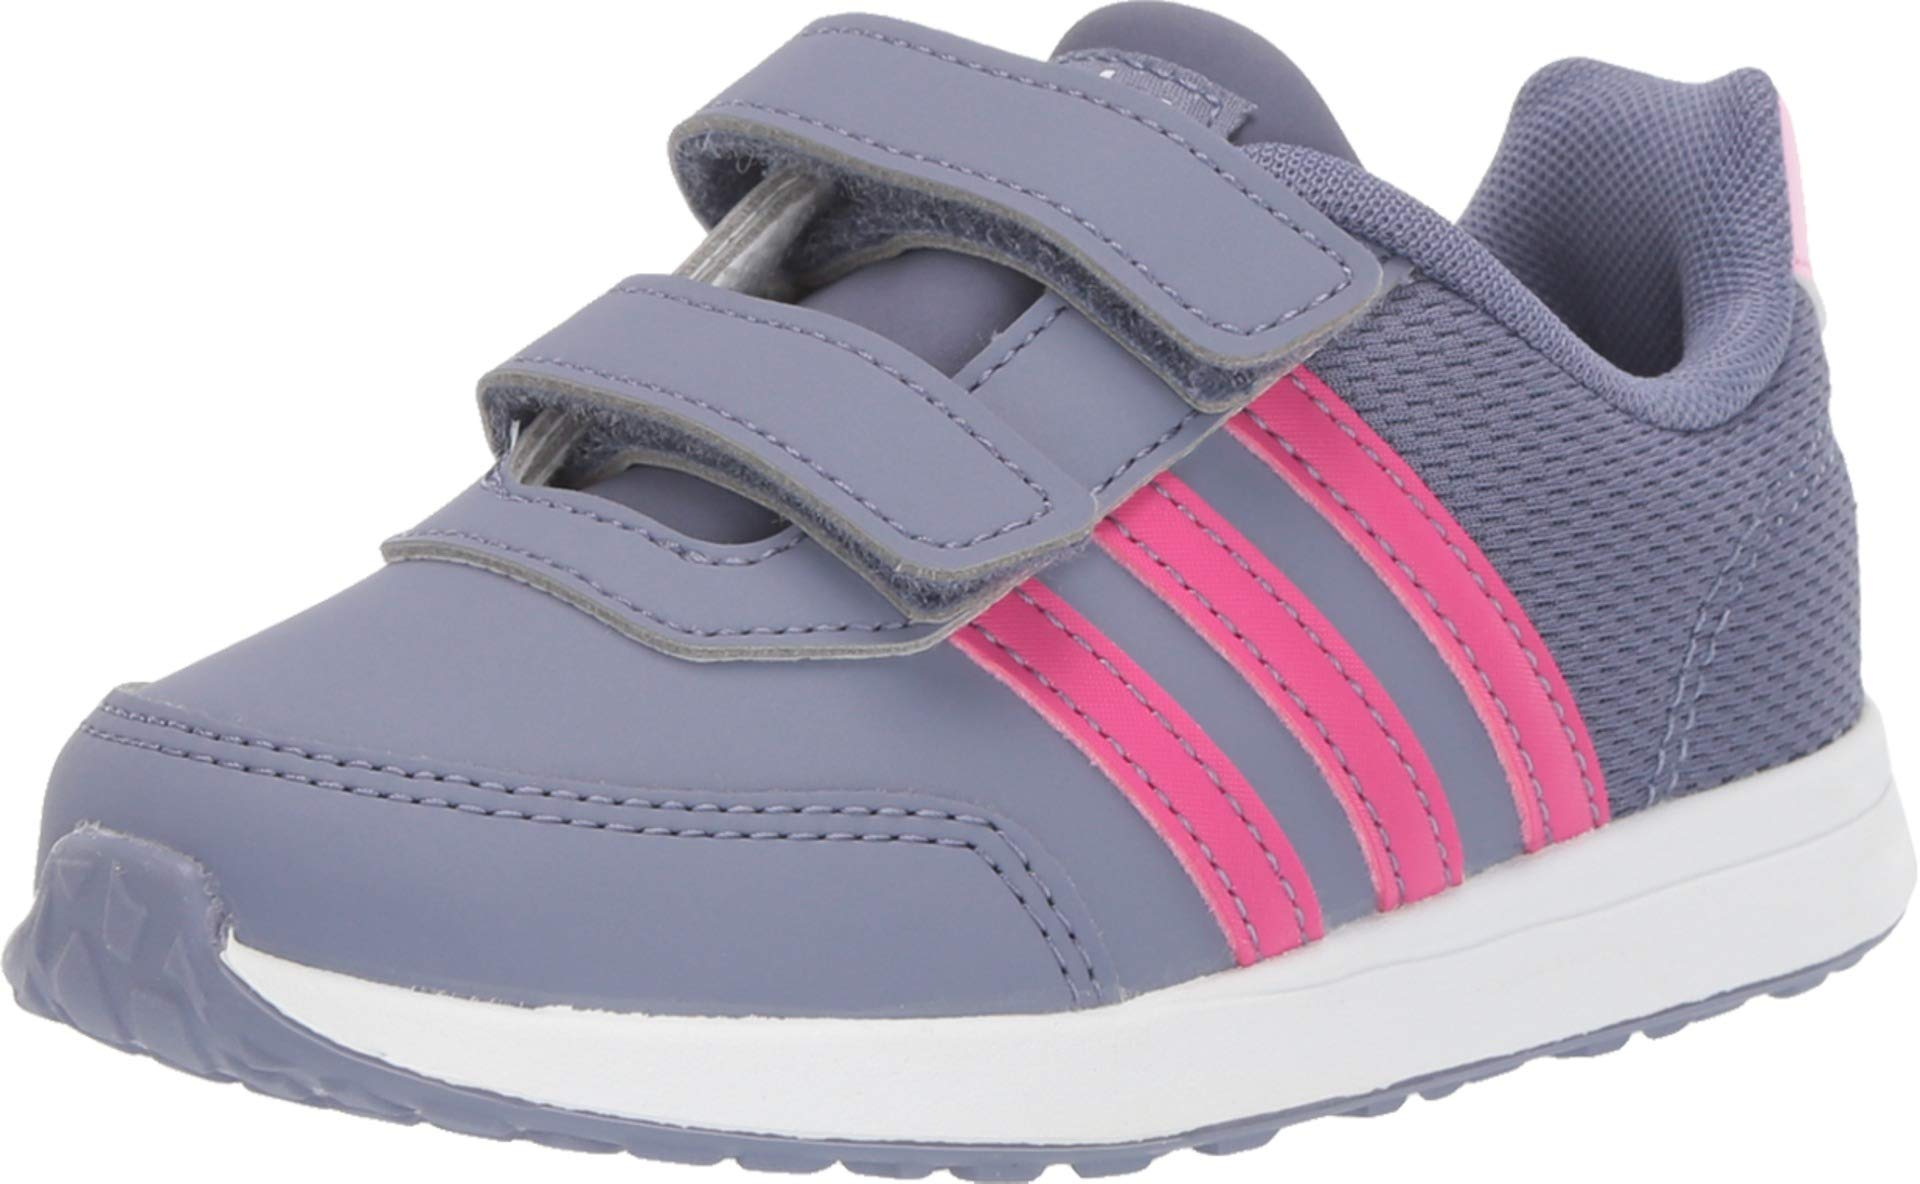 adidas Kids Unisex VS Switch 2 CMF (Infant/Toddler) Raw Indigo/Real Magenta/True Pink 9.5 M US Toddler